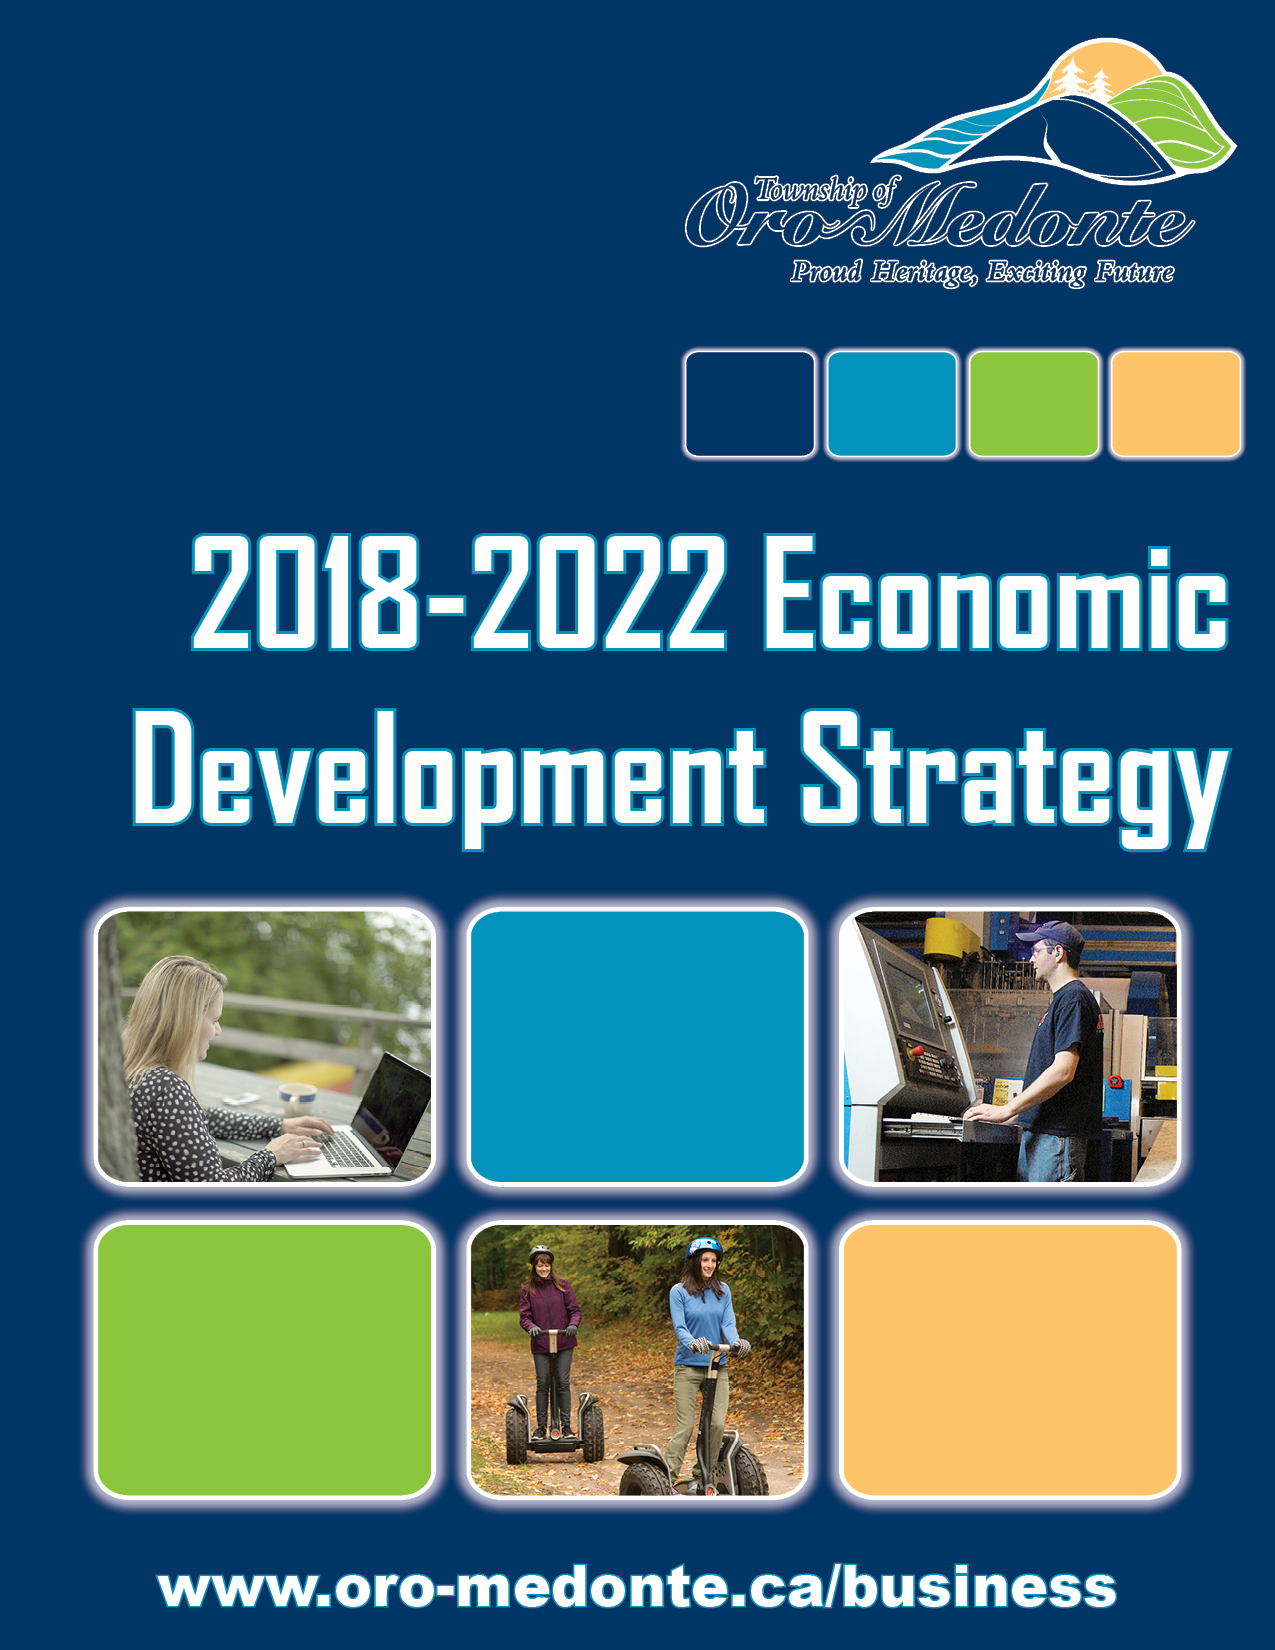 2018-2022 Economic Development Strategy